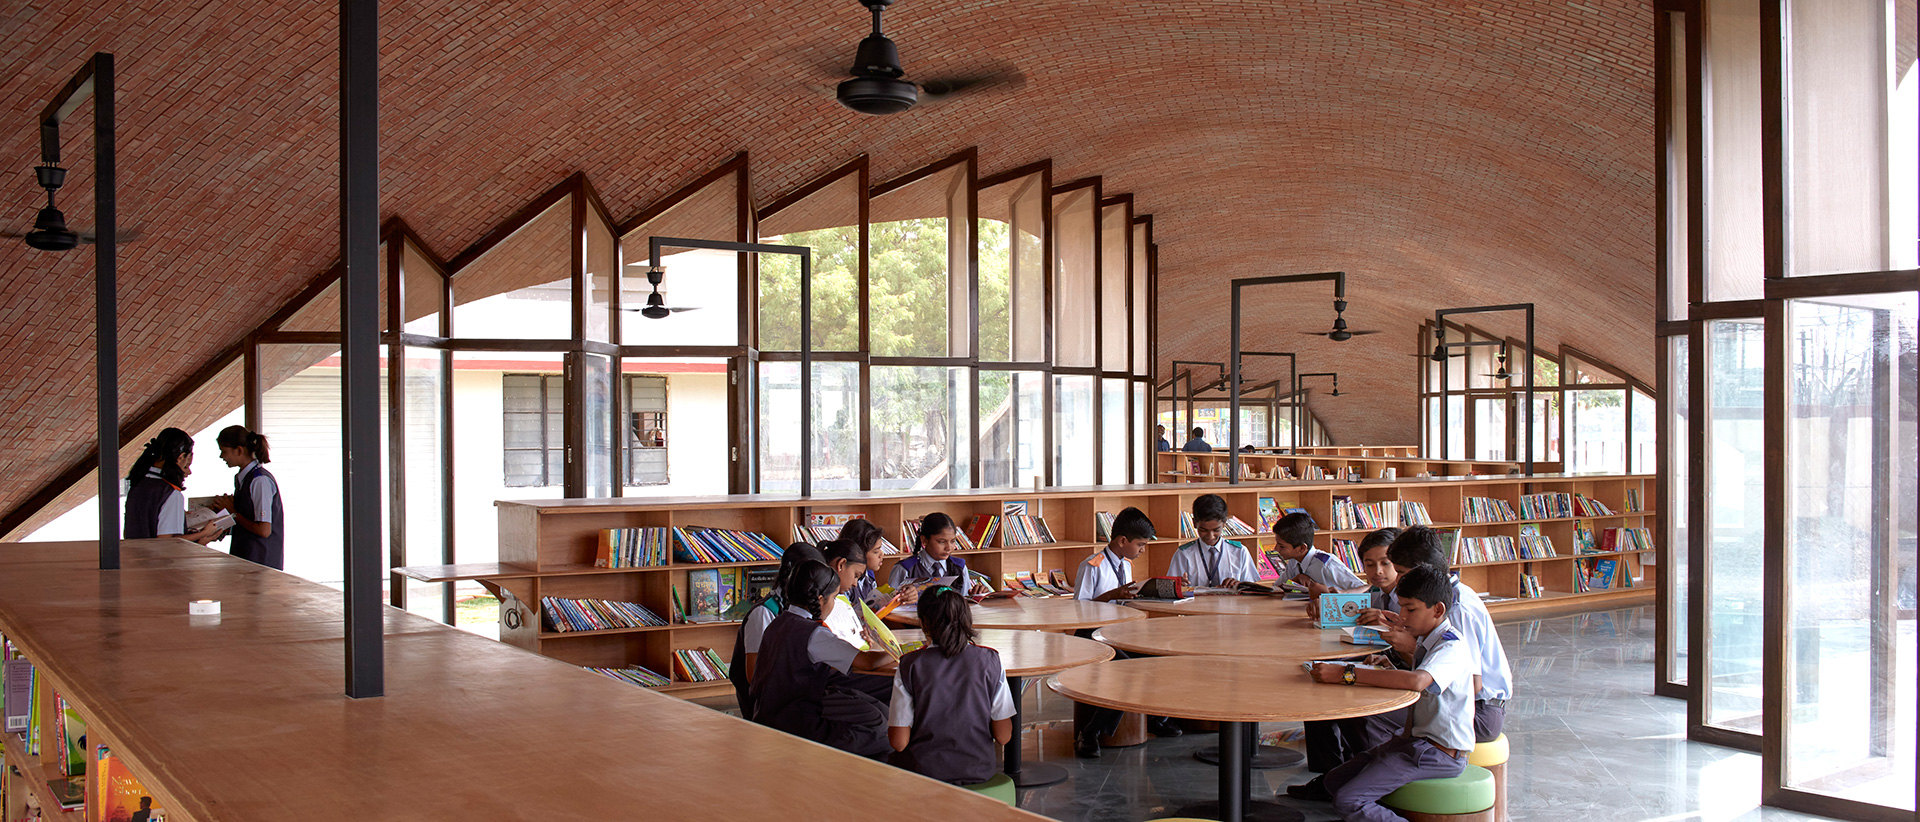 Students reading inside the structure | Maya Somaiya Library | sP+a | STIRworld